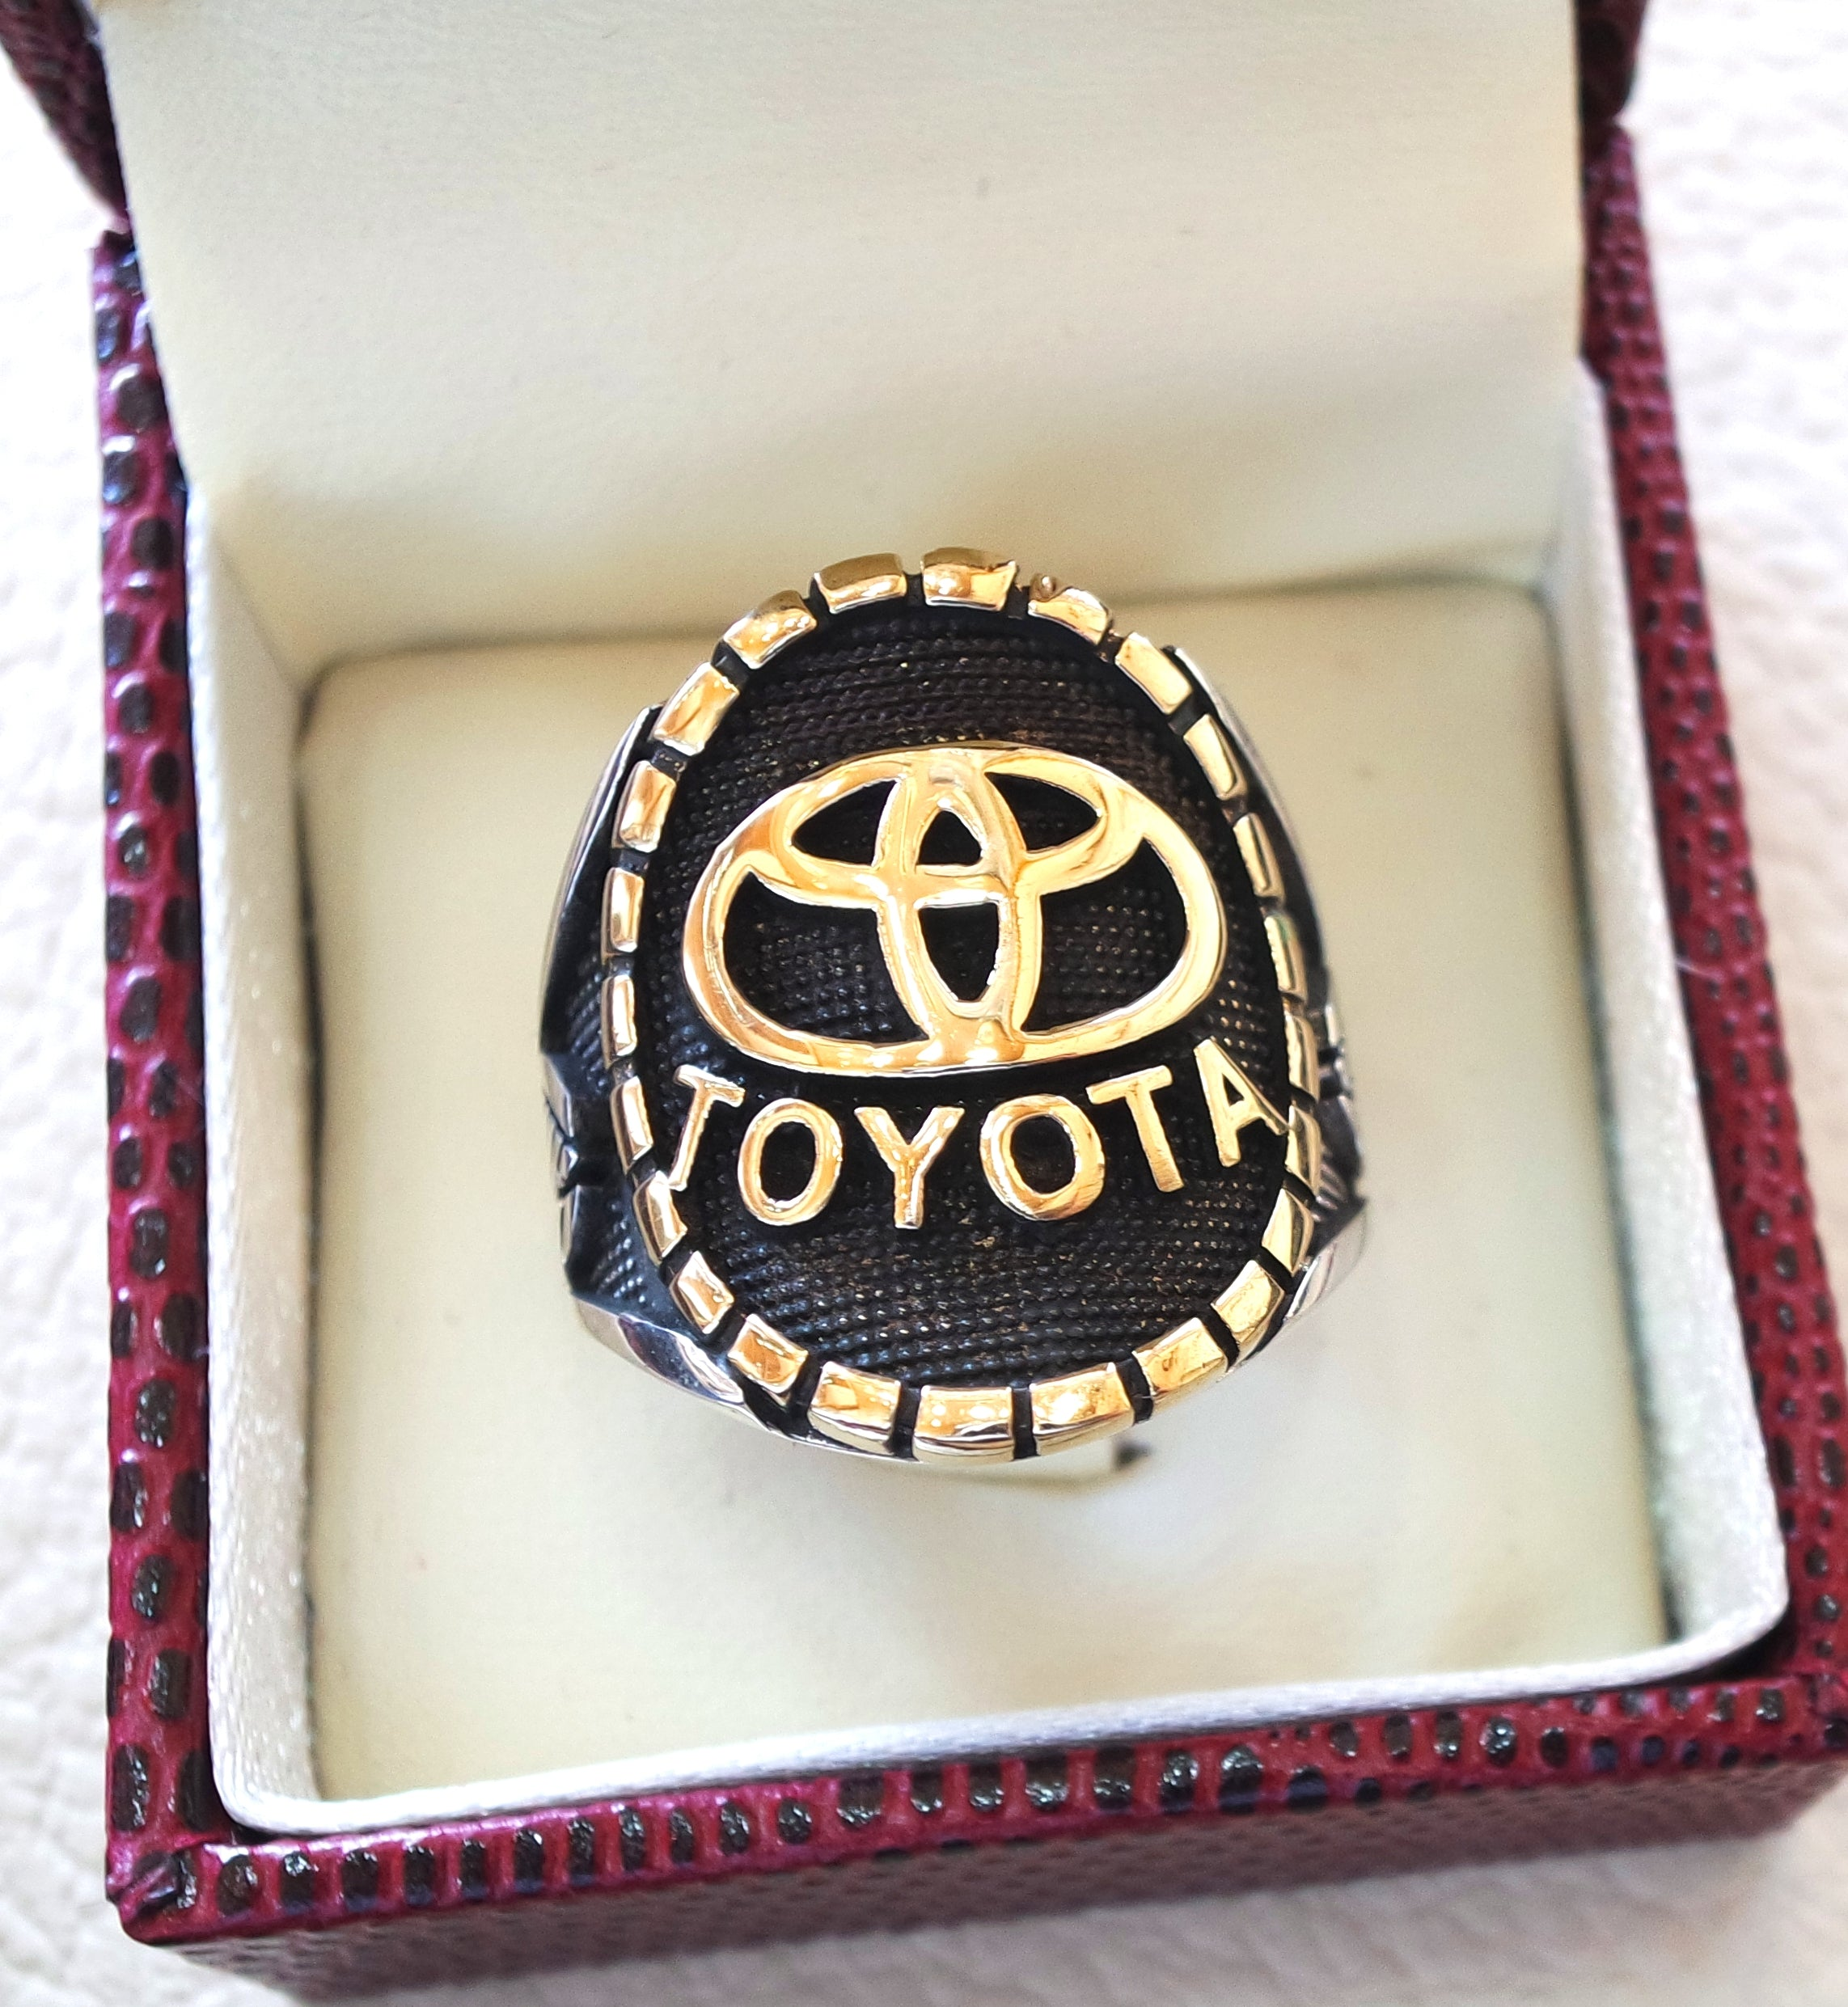 Toyota sterling silver 925 and bronze heavy man ring all sizes ideal for new car gift